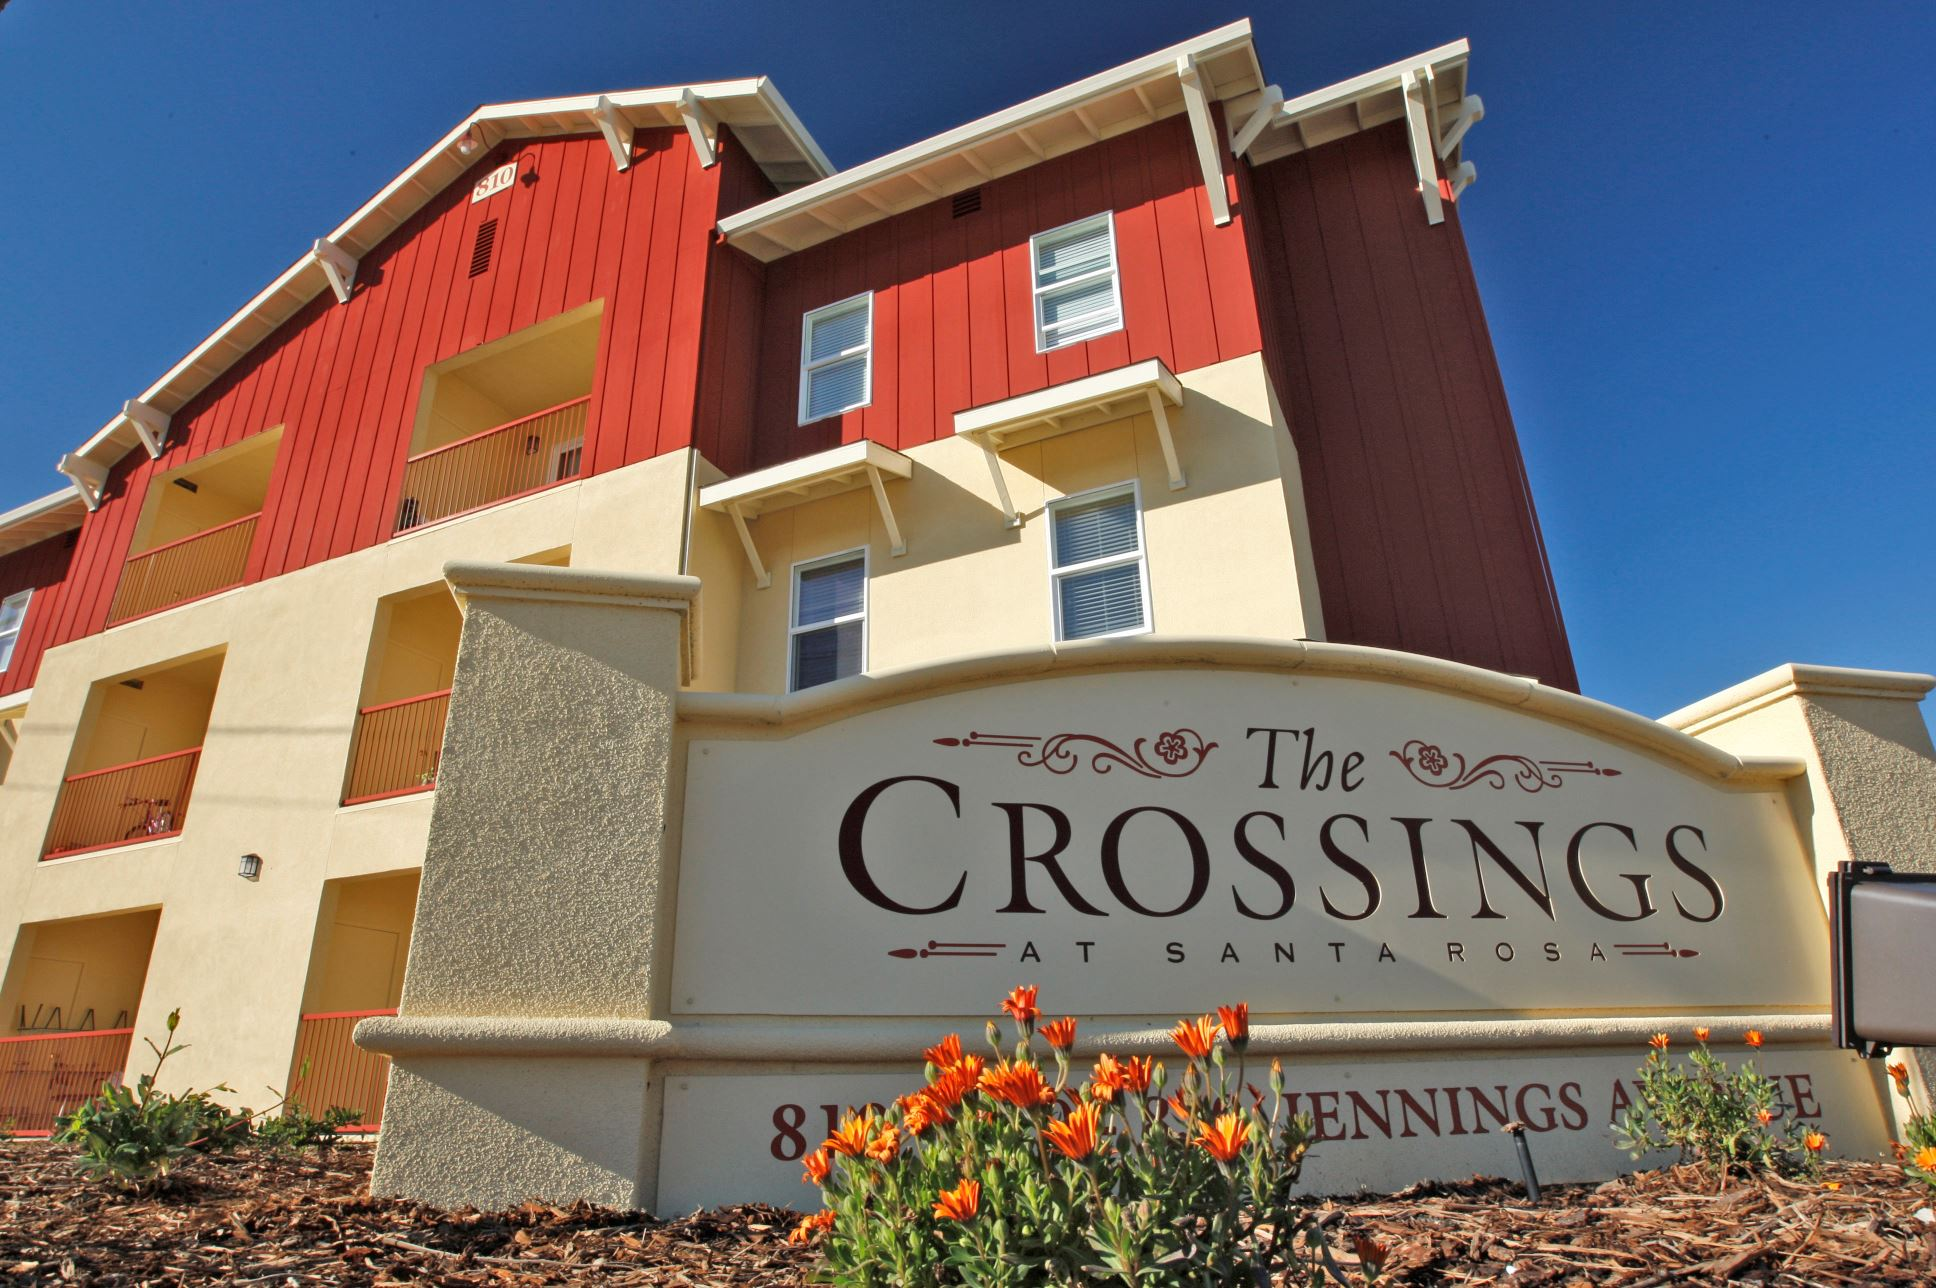 The Crossings Front Sign Feb. 27 2008